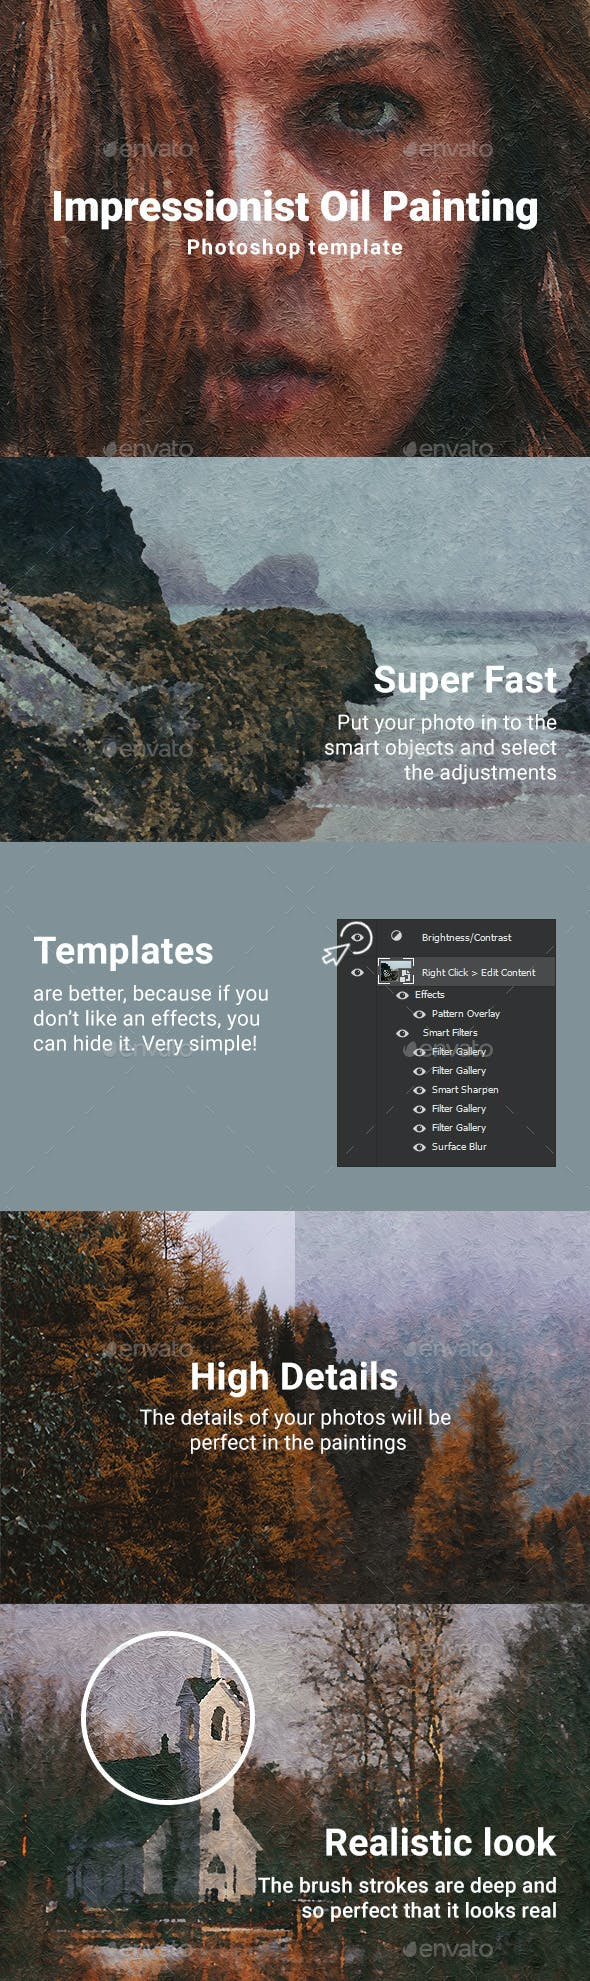 Impressionist Oil Painting Template By Ragestudio Graphicriver